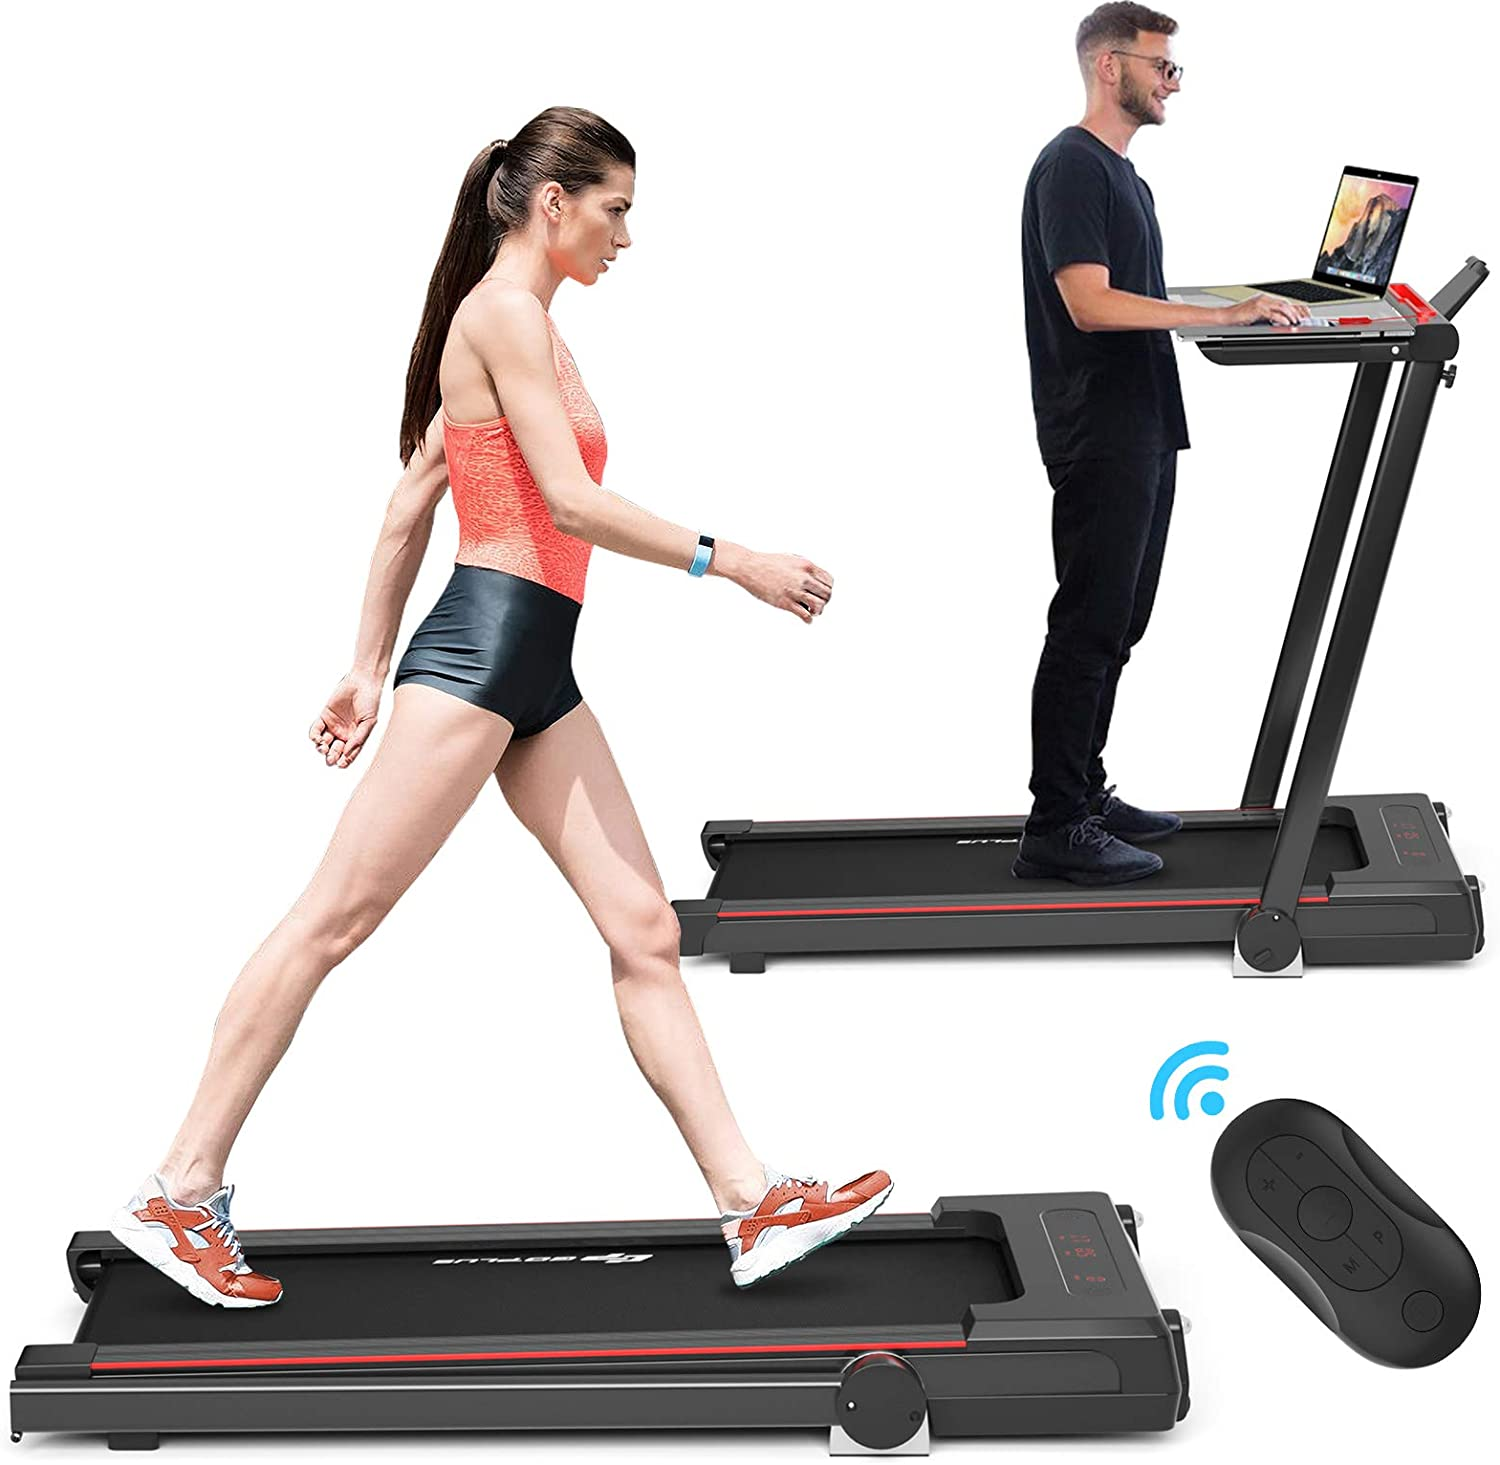 Goplus 3-in-1 Treadmill with Large Desk, 2.25HP Folding Electric Treadmills, LCD Display, Remote Control, Bluetooth Speakers, Walking Jogging Machine for Home/Office Use